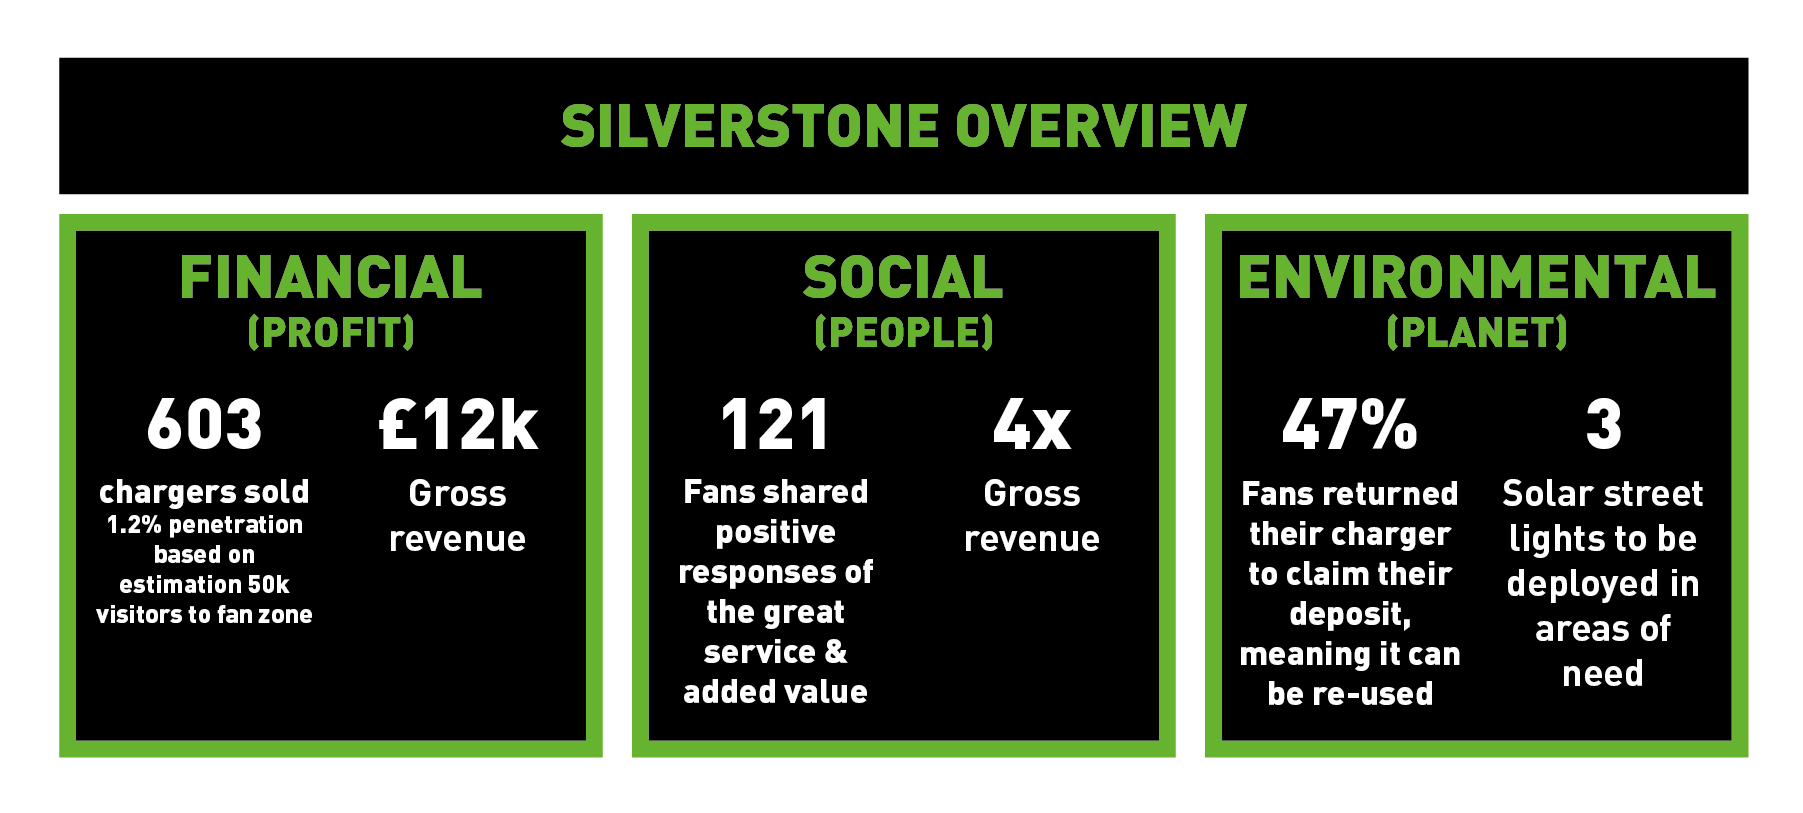 lifesaver silverstone overview-01.png